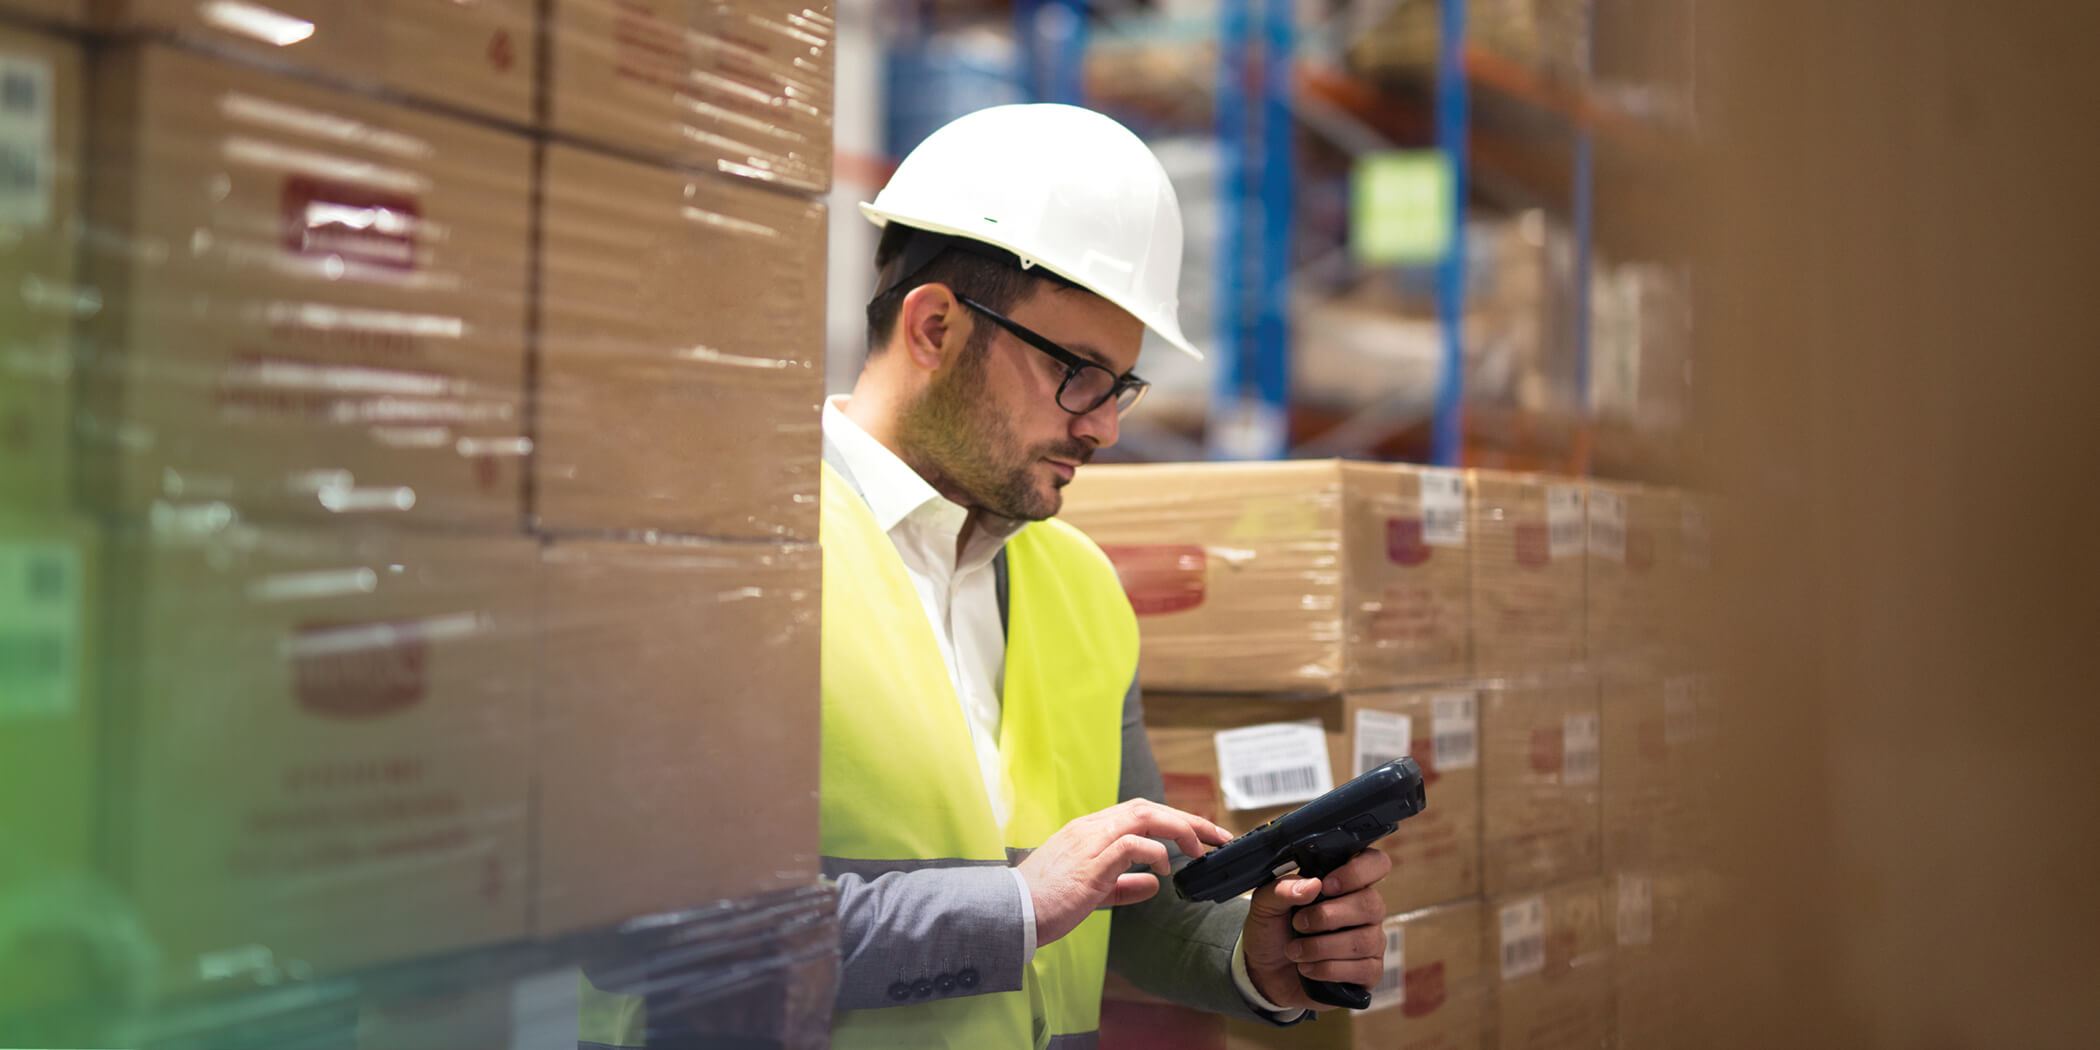 VAL Value Added Logistics Worker Inventory